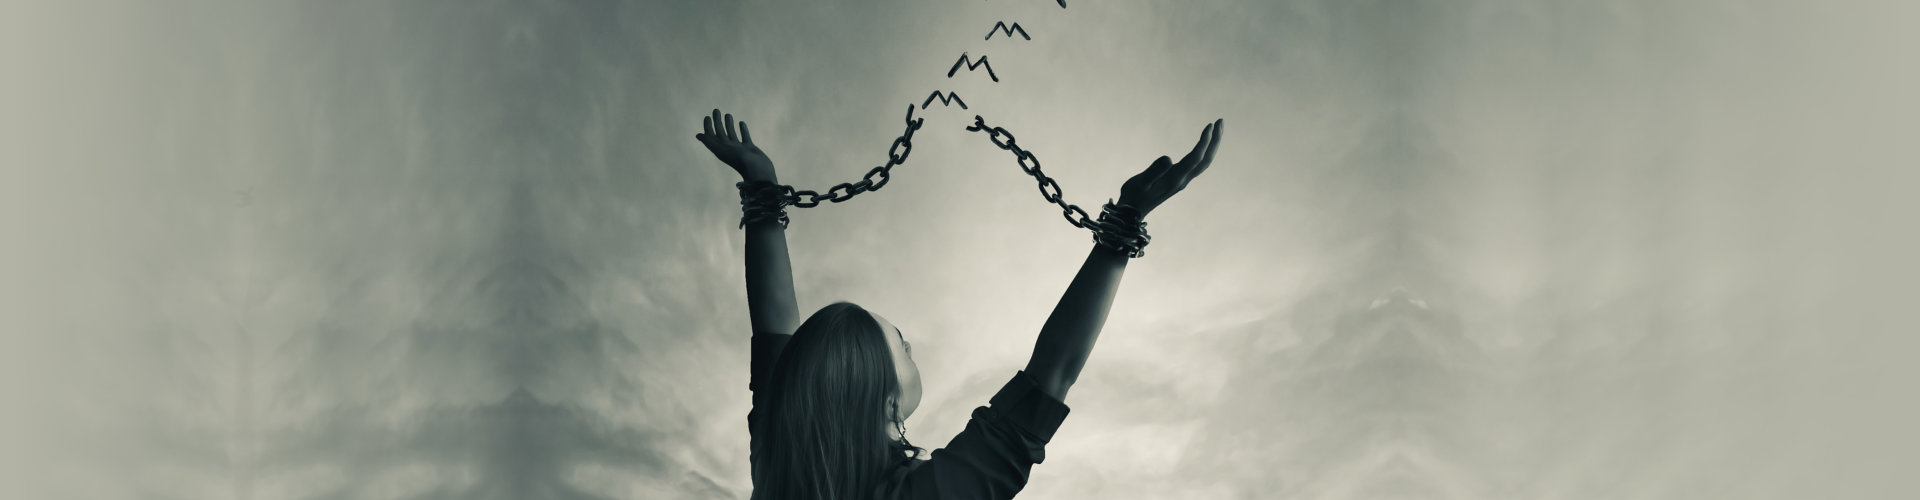 A woman breaks her chains as the links turn into freedom birds